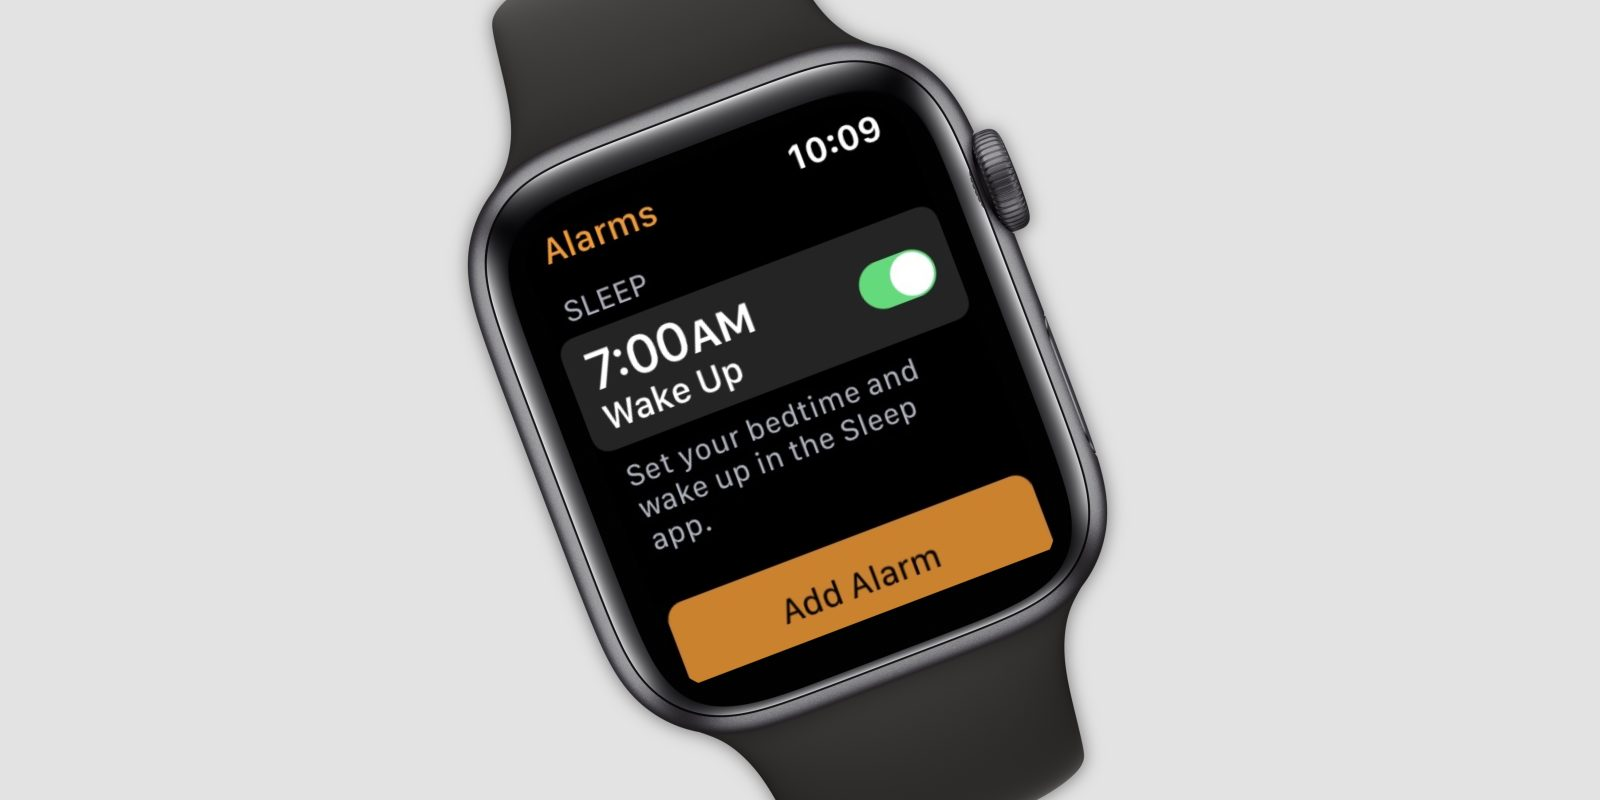 Official Apple Watch Sleep app accidentally mentioned in Alarms app screenshot